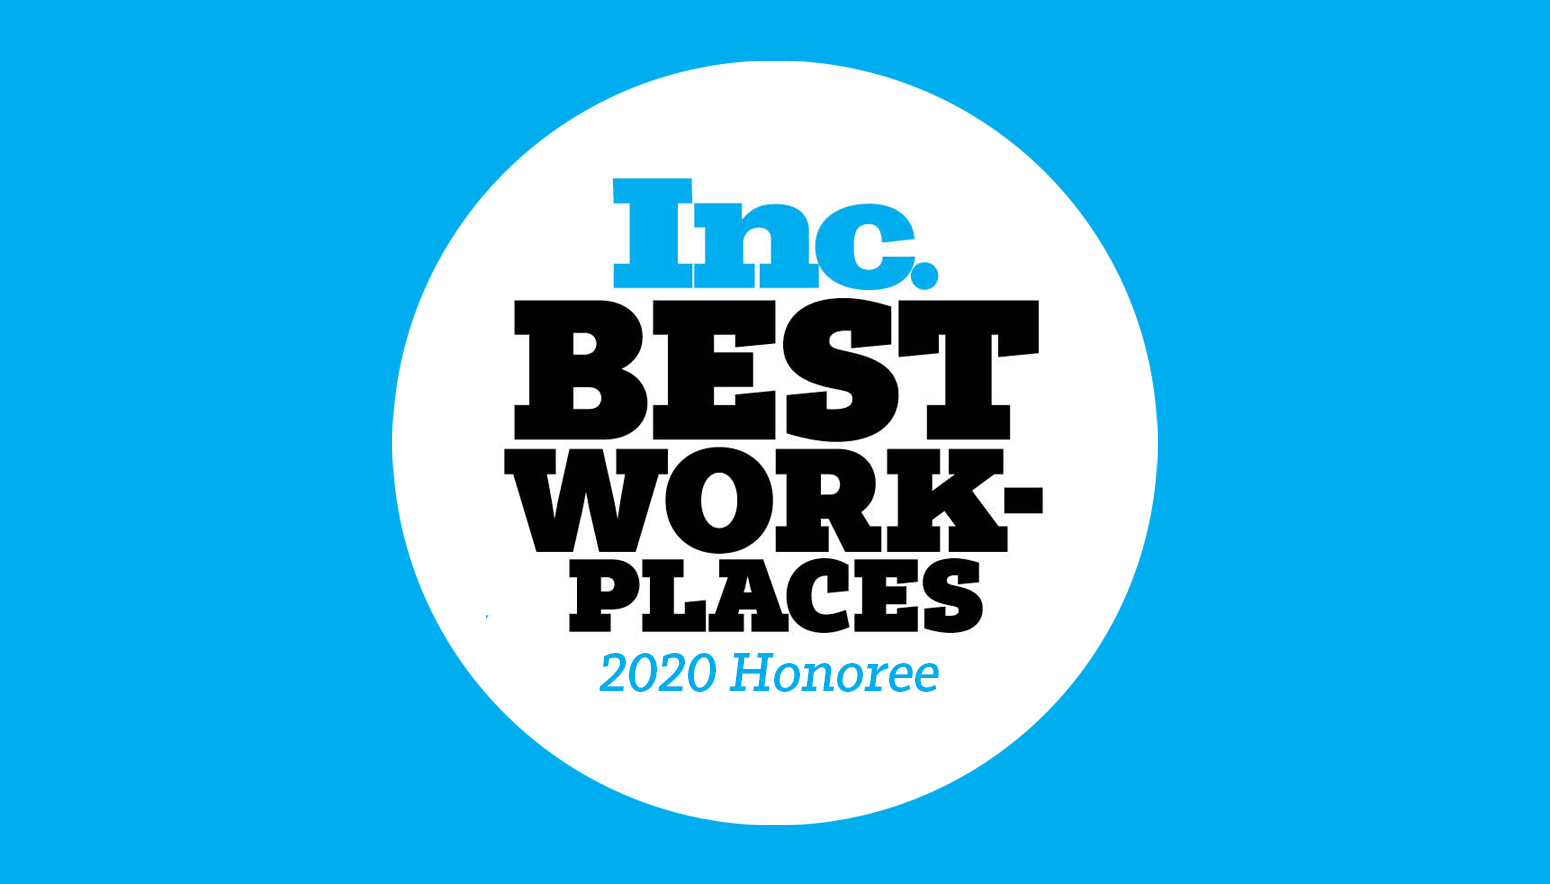 Inc 5000's 2020 Best Places to Work